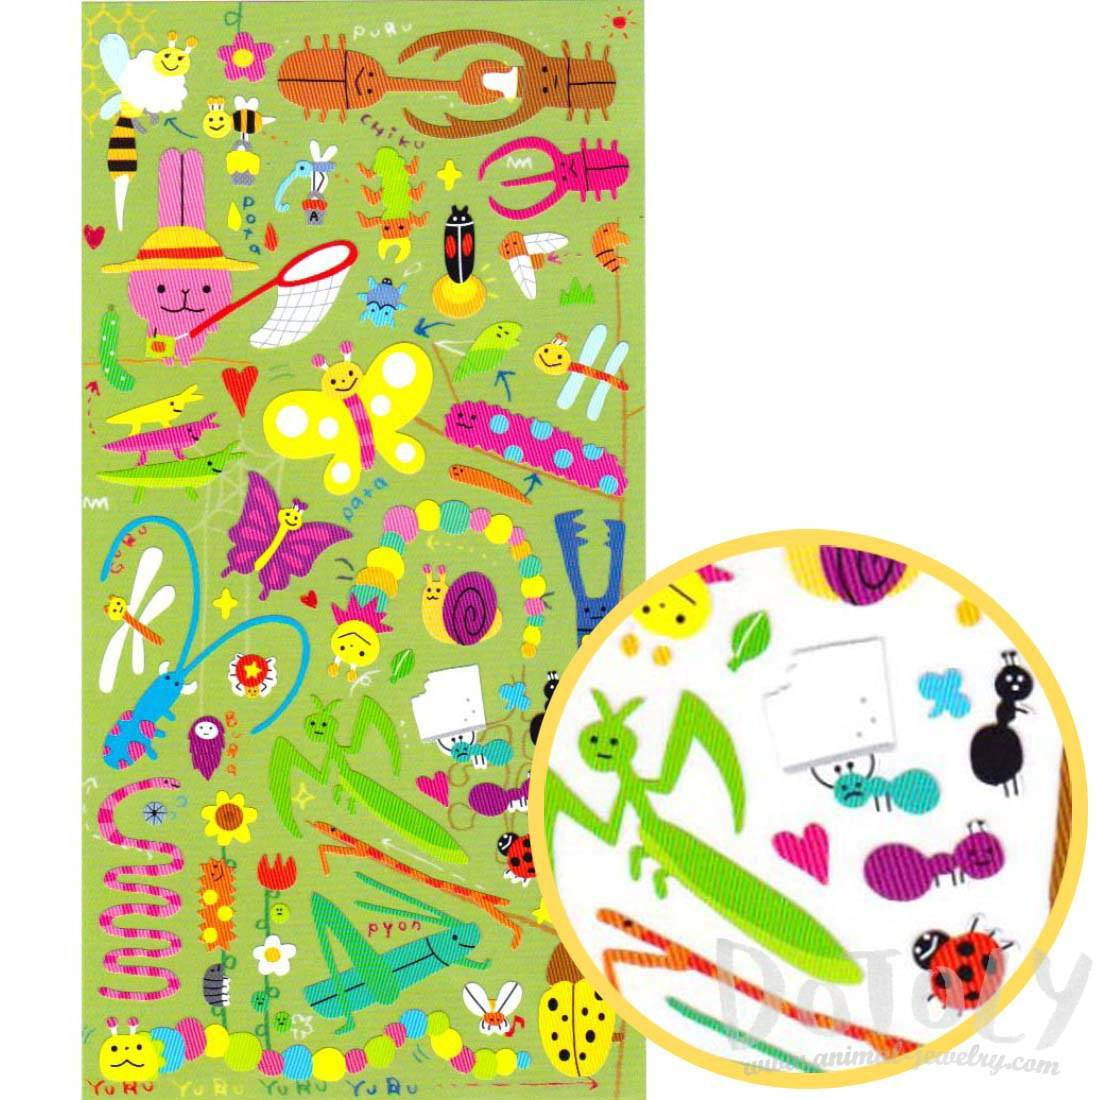 Cartoon Grasshopper Beetle Bugs Insect Themed Stickers